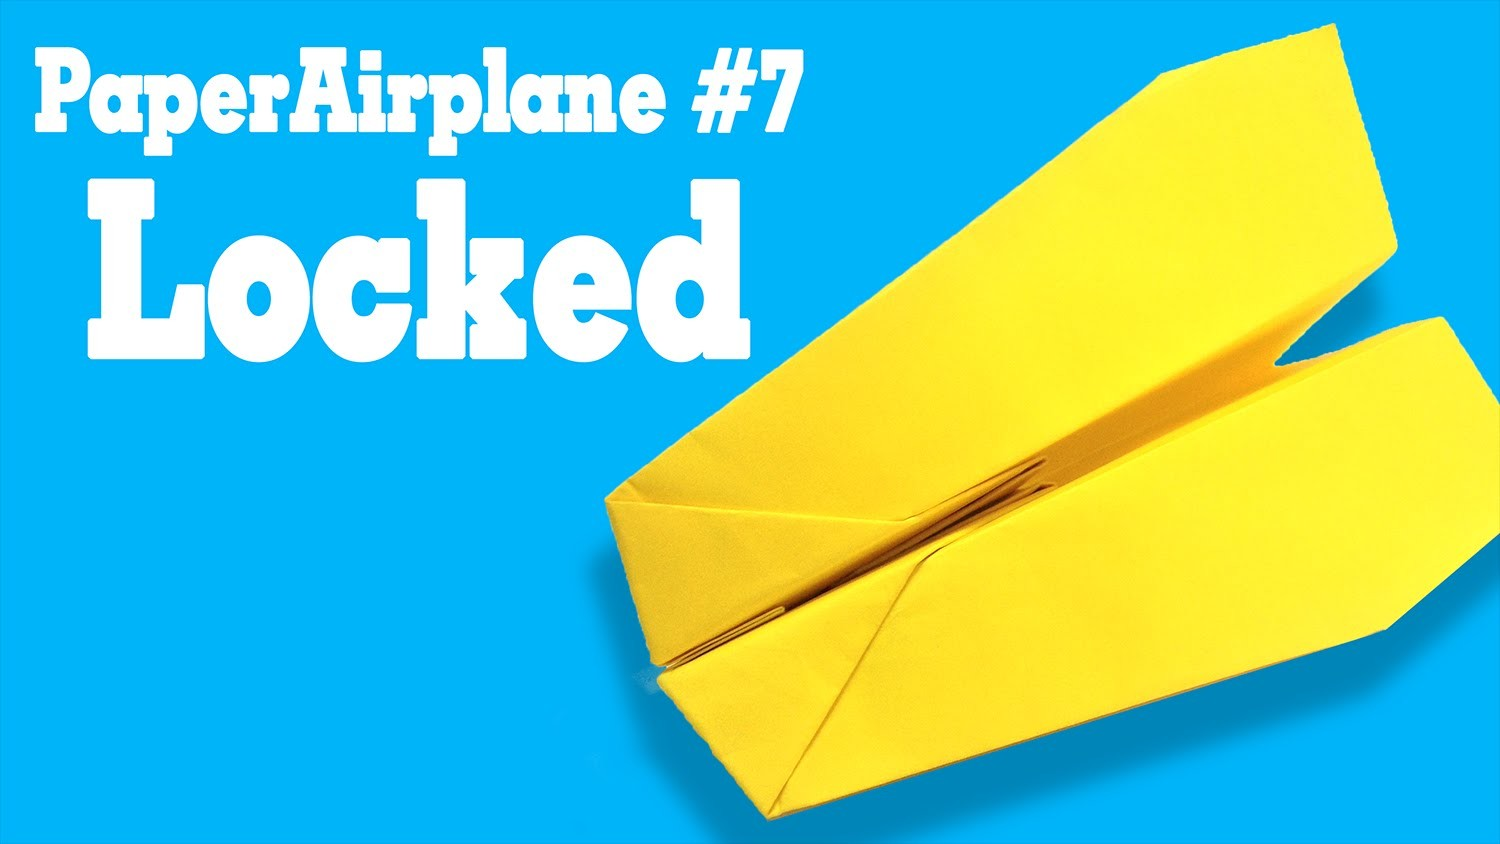 Easy origami - How to make a easy paper airplane glider that FLY FAR #7| Locked